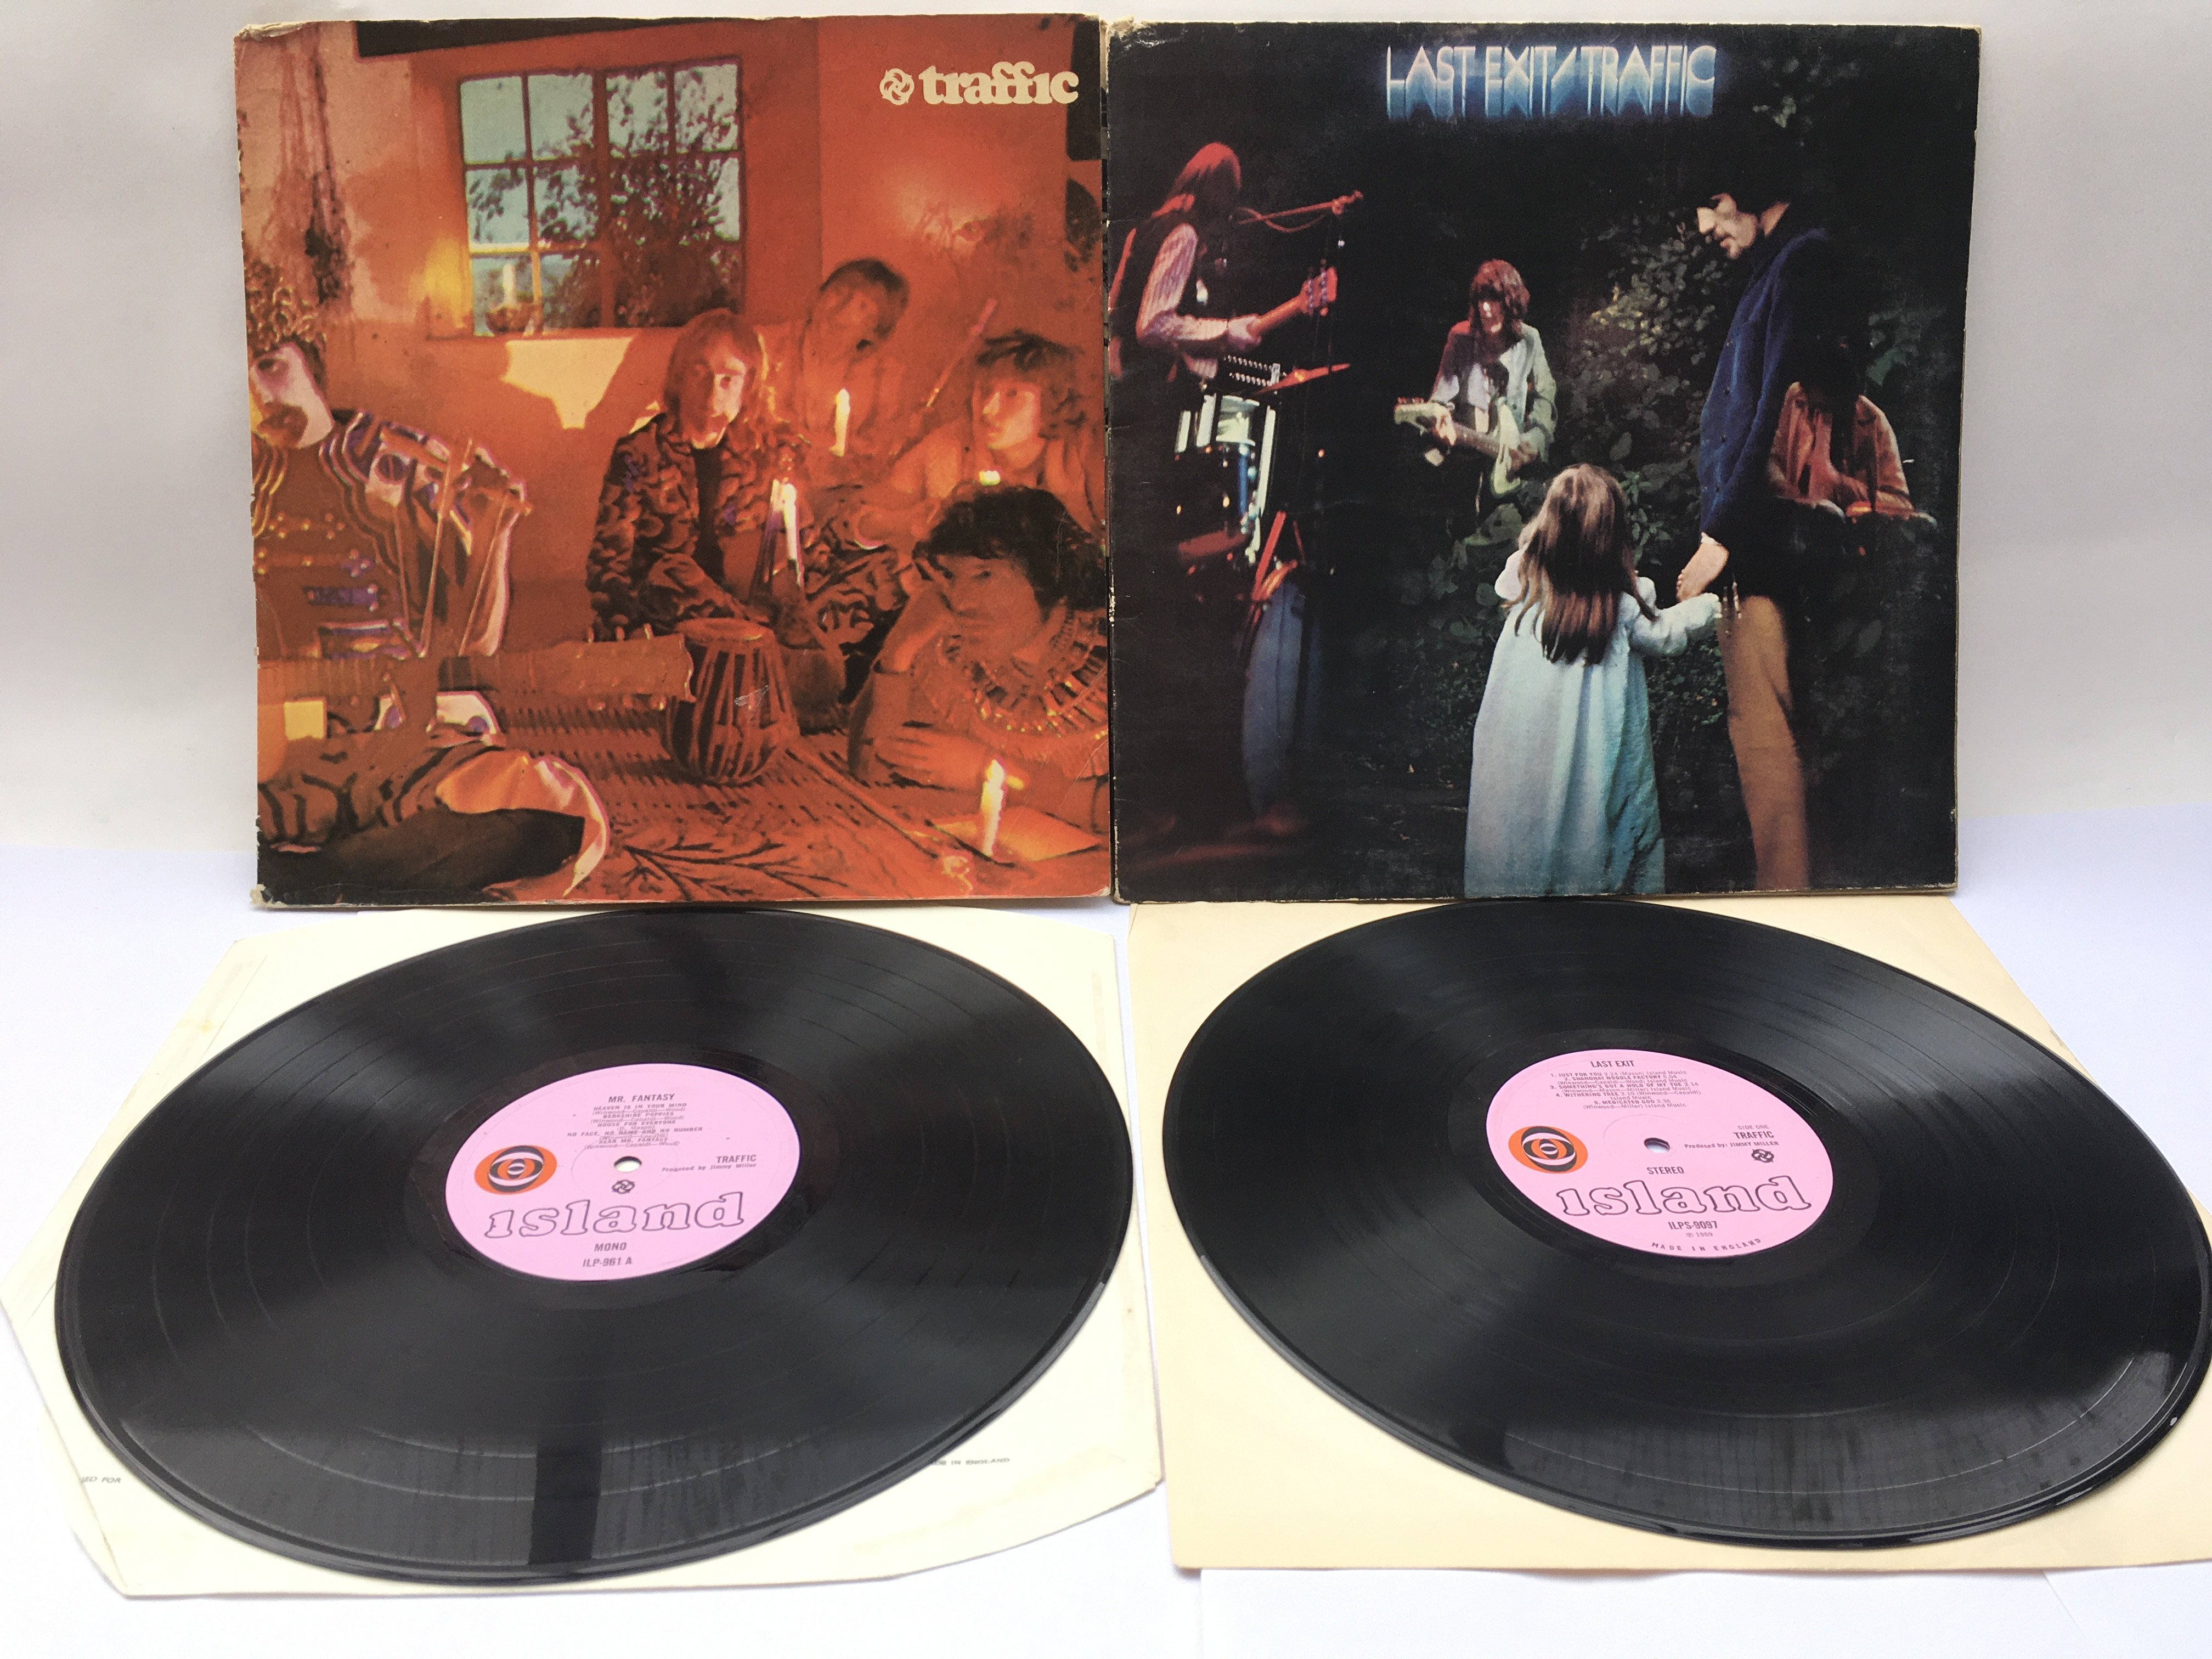 Two LPs by Traffic comprising a first UK pressing